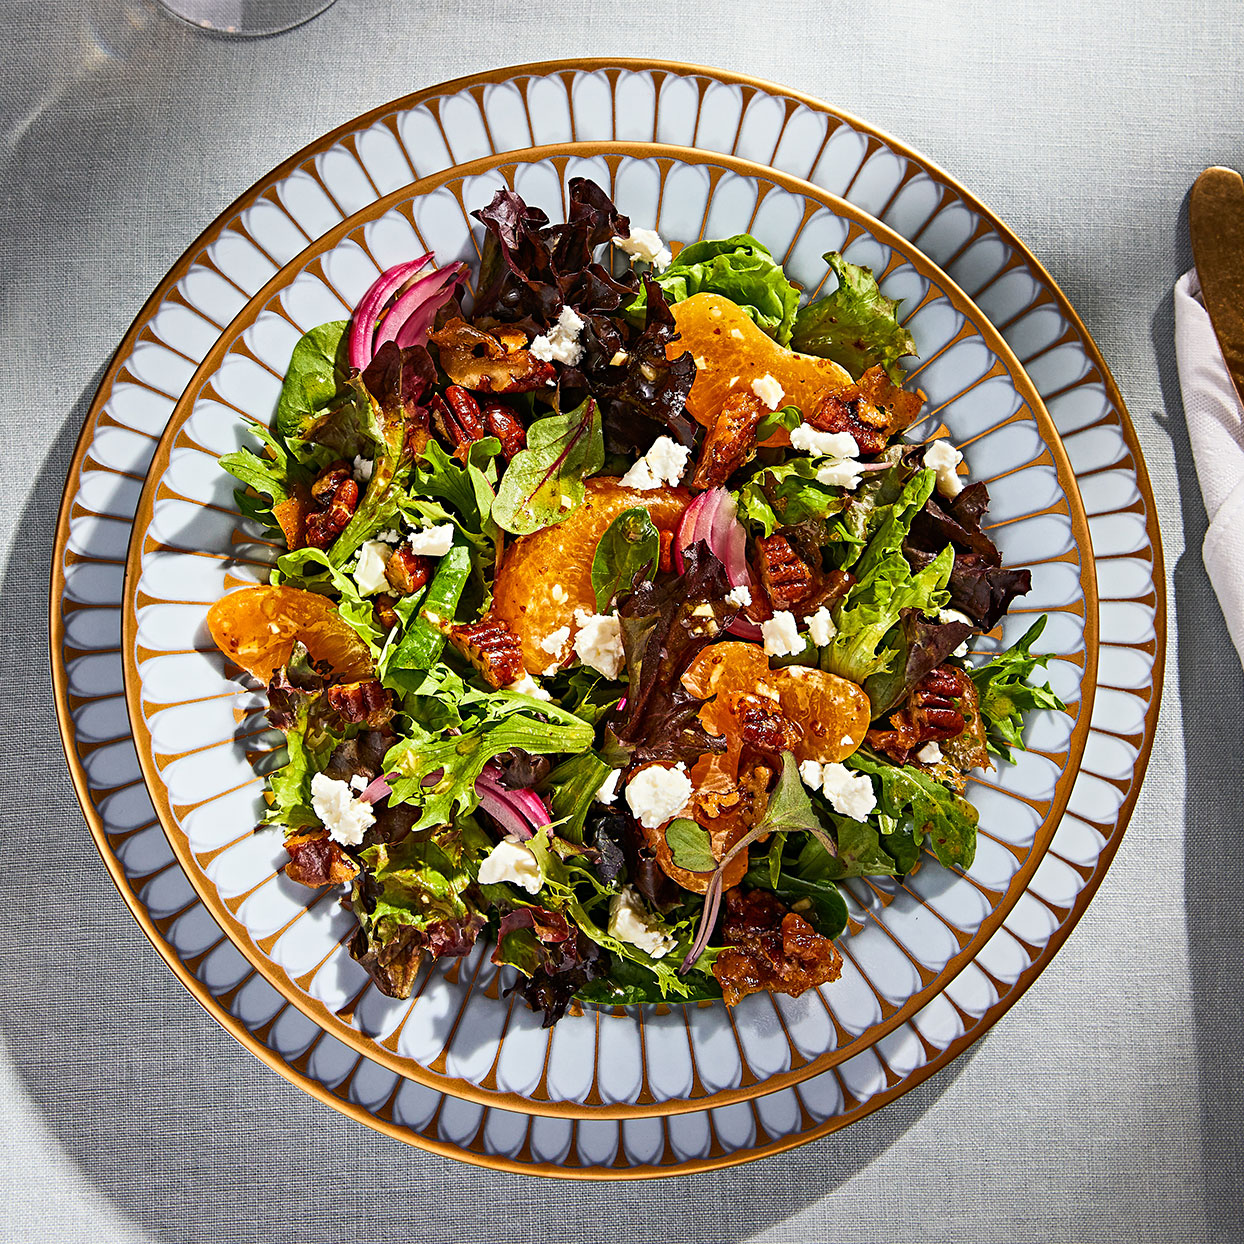 Satsuma Mandarin Salad with Spiced Pecans, Pickled Red Onion & Cane Vinaigrette